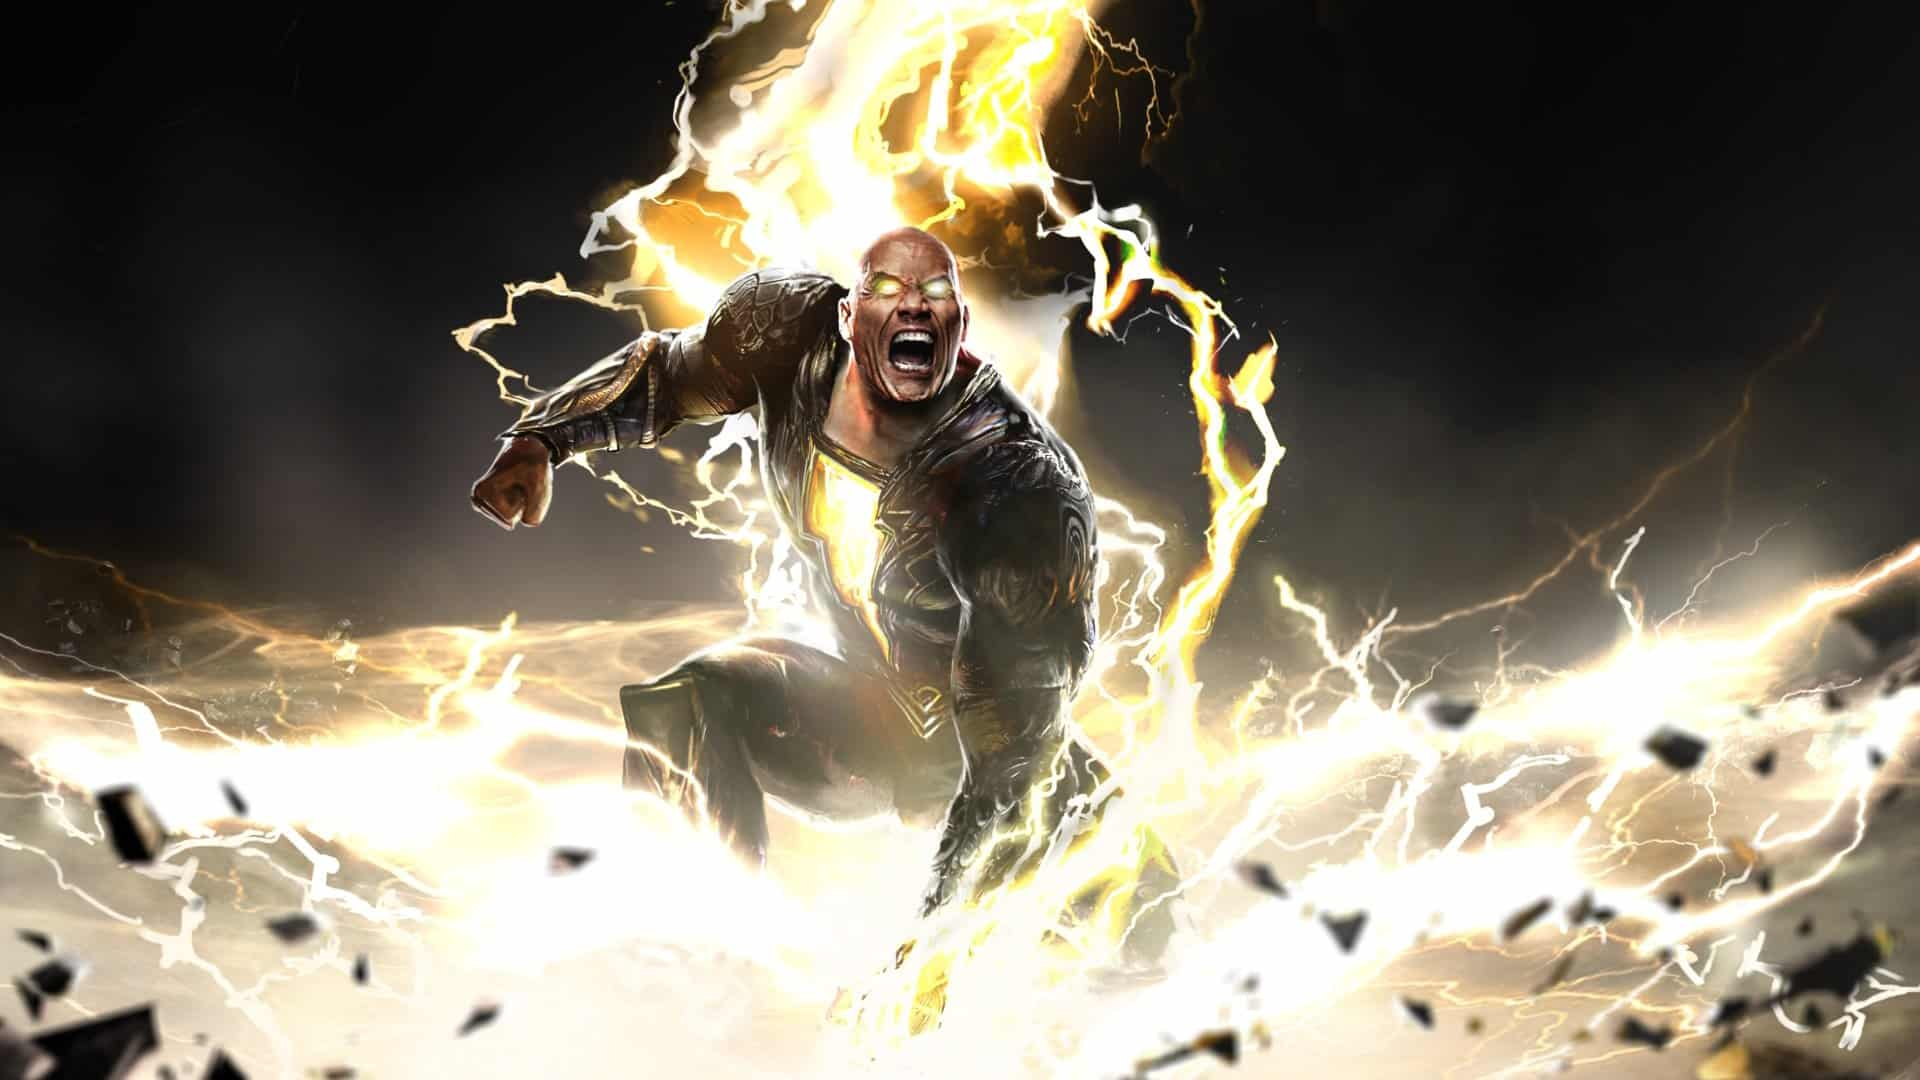 Dwayne Johnson annuncia la data di uscita di Black Adam con un video epico!